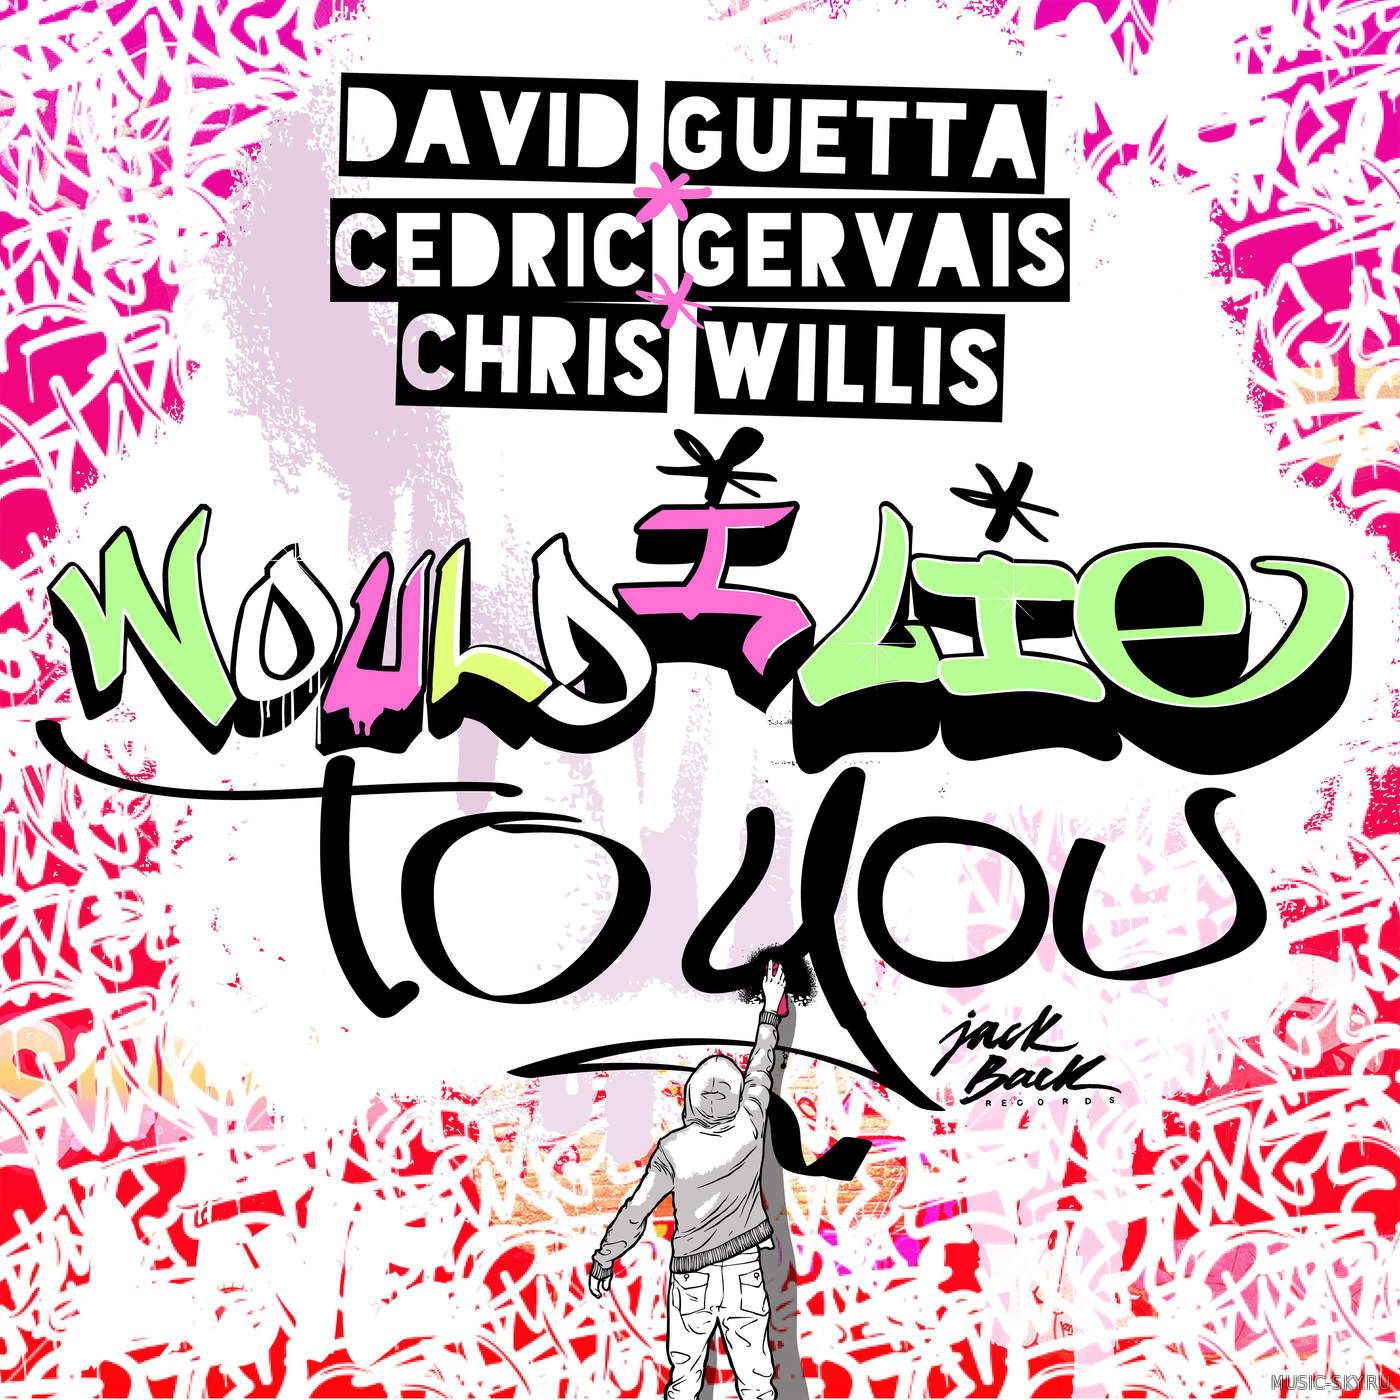 David Guetta & Cedric Gervais & Chris Willis – Would I Lie To You (Radio Edit)